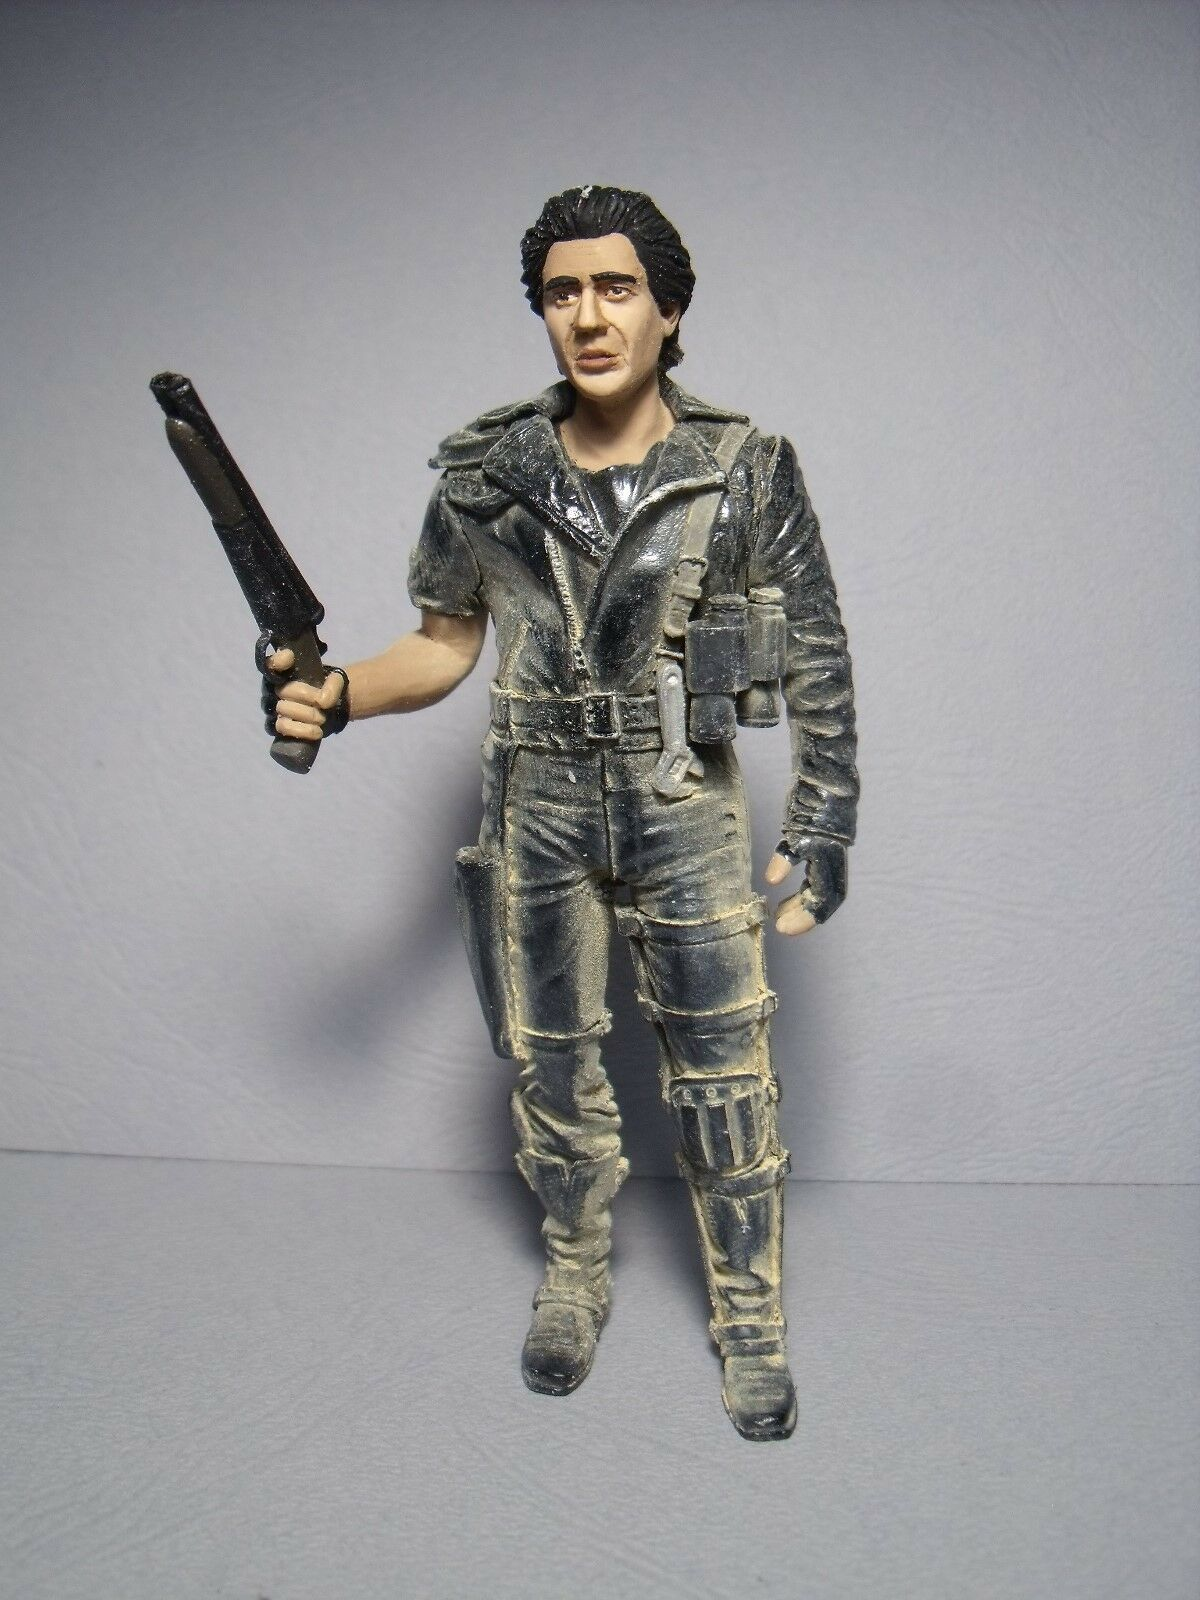 MAD  MAX    1 18  UNPAINTED  FIGURE  MADE  BY  VROOM  FOR  MATTEL  MINICHAMPS 487c70